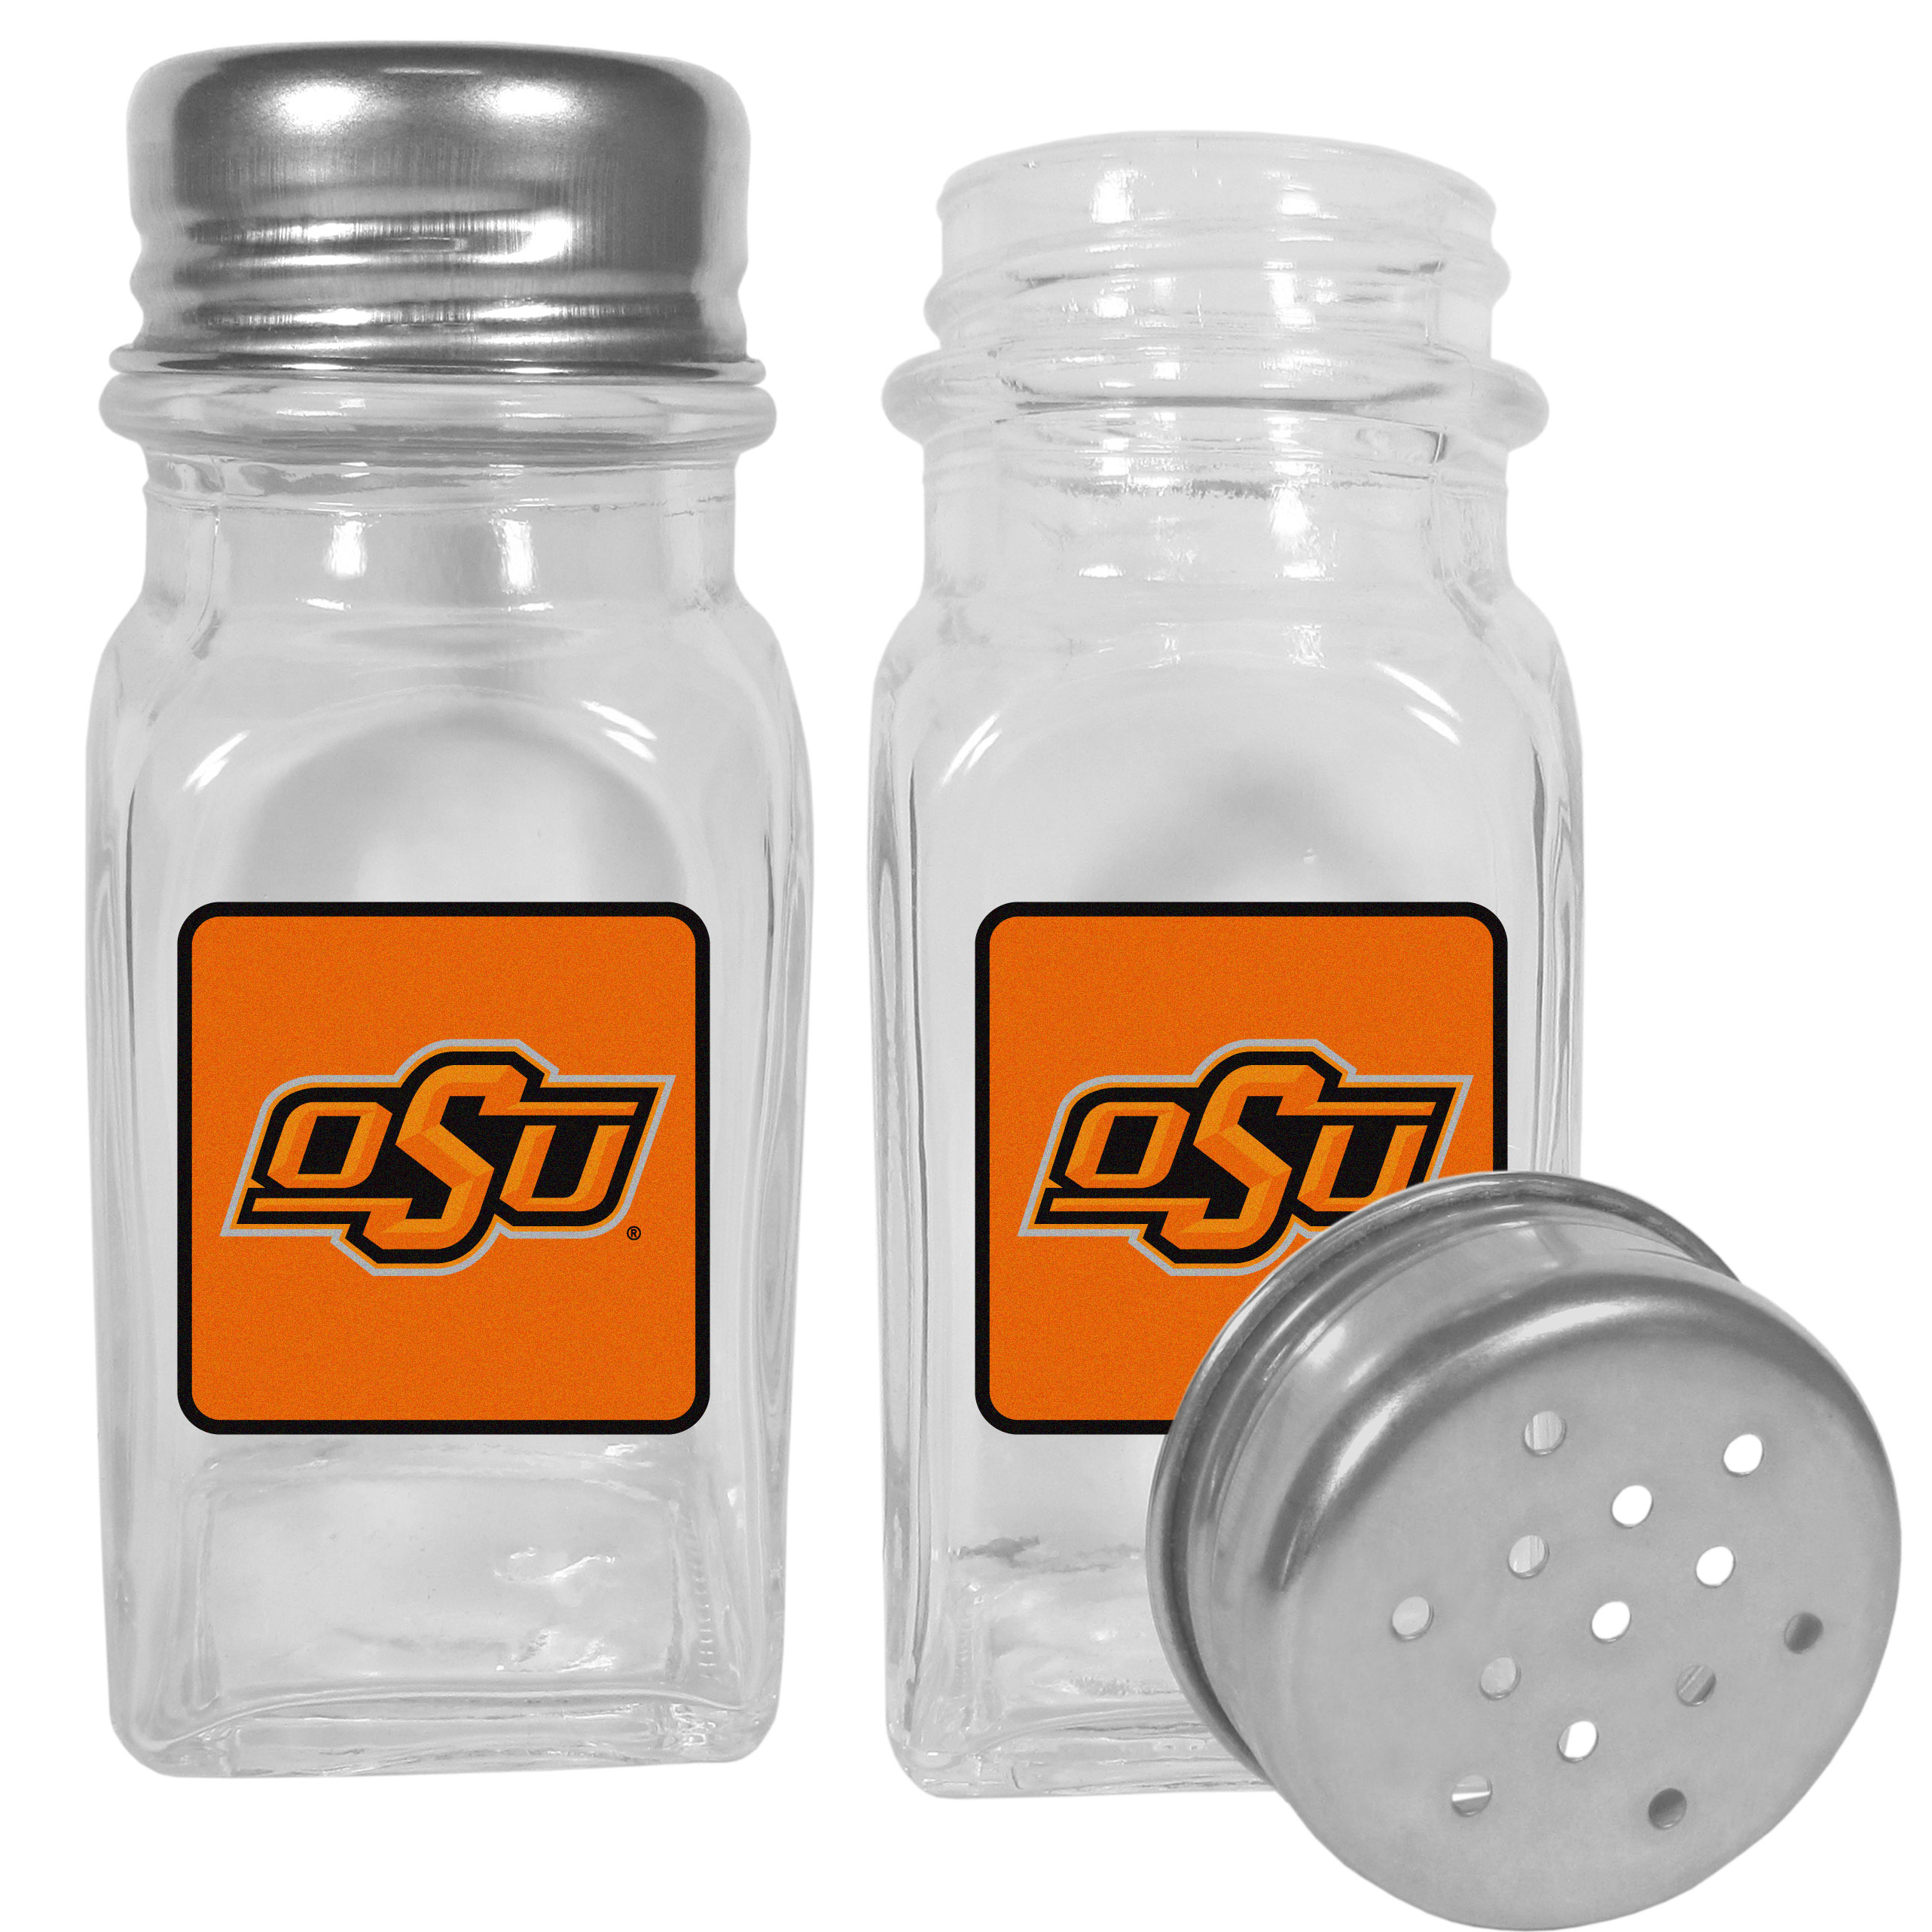 Oklahoma St. Cowboys Graphics Salt and Pepper Shaker - No tailgate party is complete without your Oklahoma St. Cowboys salt & pepper shakers featuring bright team logos. The diner replica salt and pepper shakers are glass with screw top lids. These team shakers are a great grill accessory whether you are barbecuing on the patio, picnicing or having a game day party.